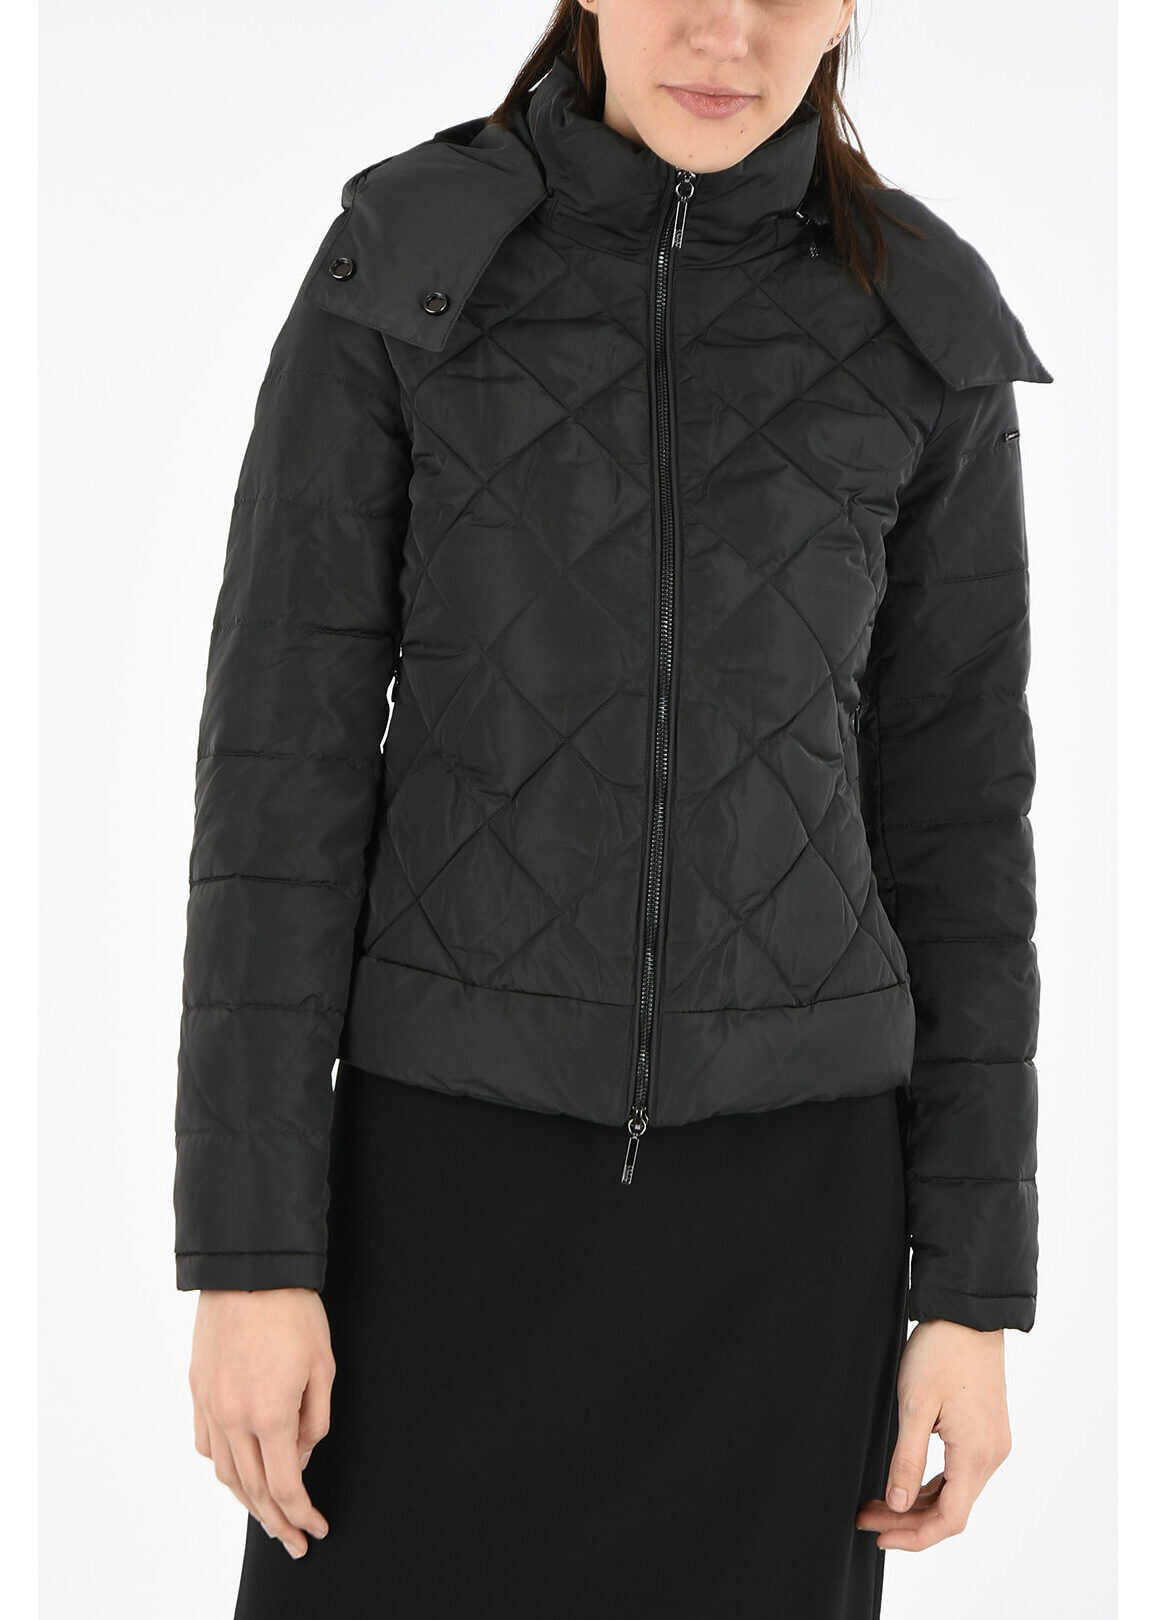 Armani ARMANI JEANS hooded quilted jacket GRAY